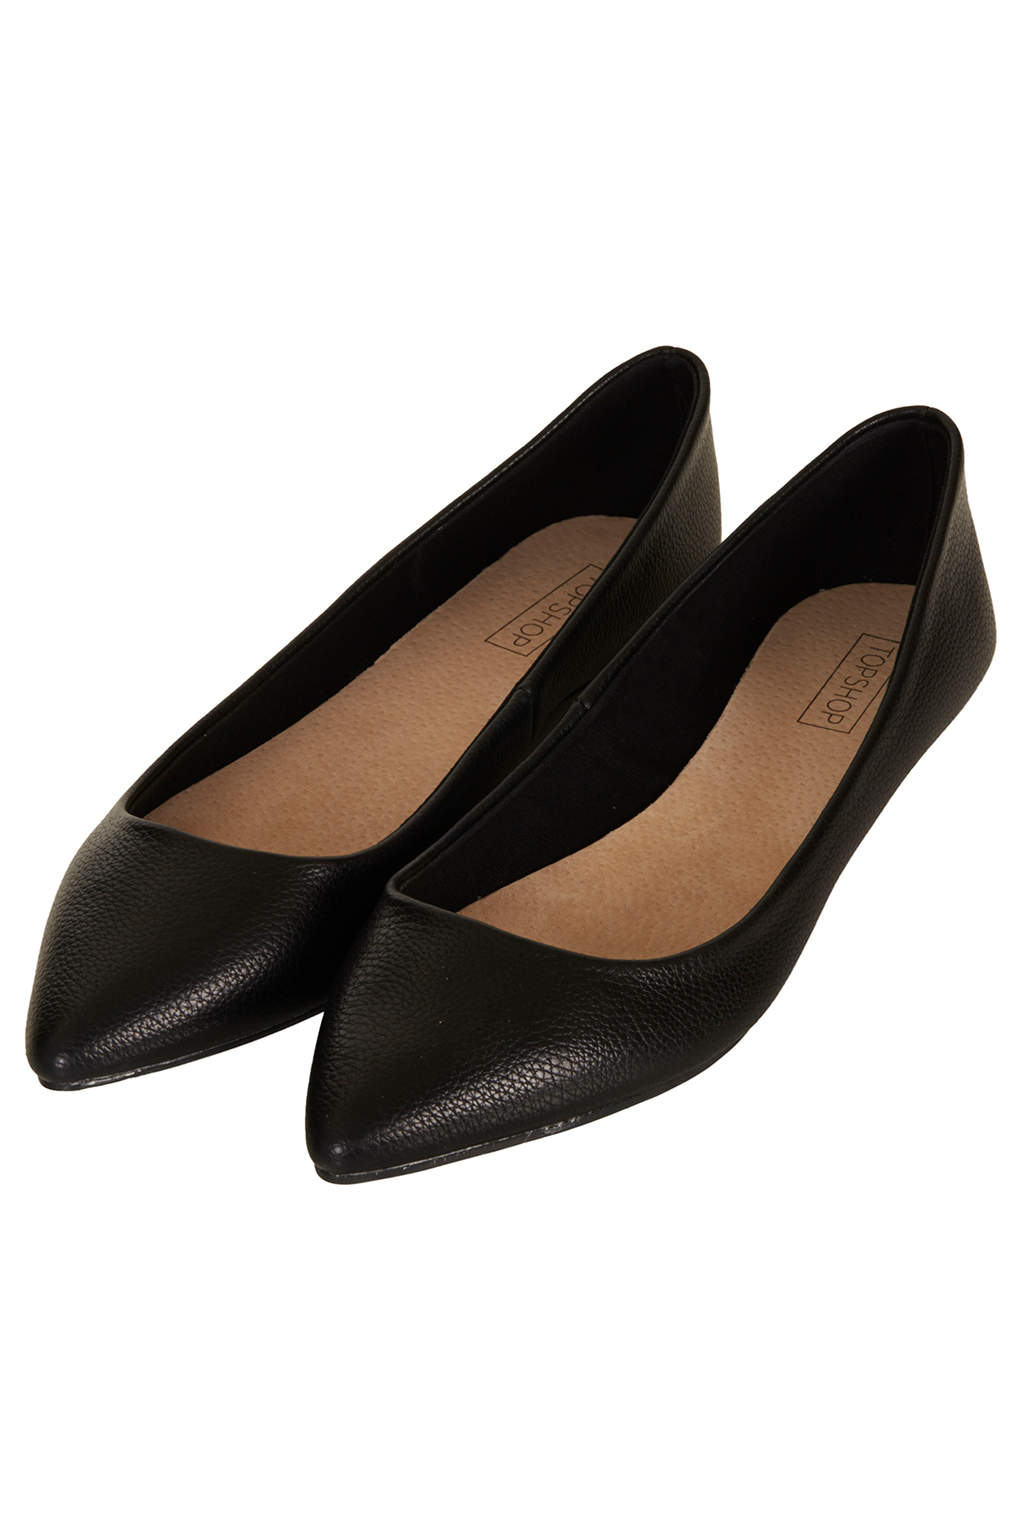 topshop voltaire softy pointed slip on shoes in black lyst